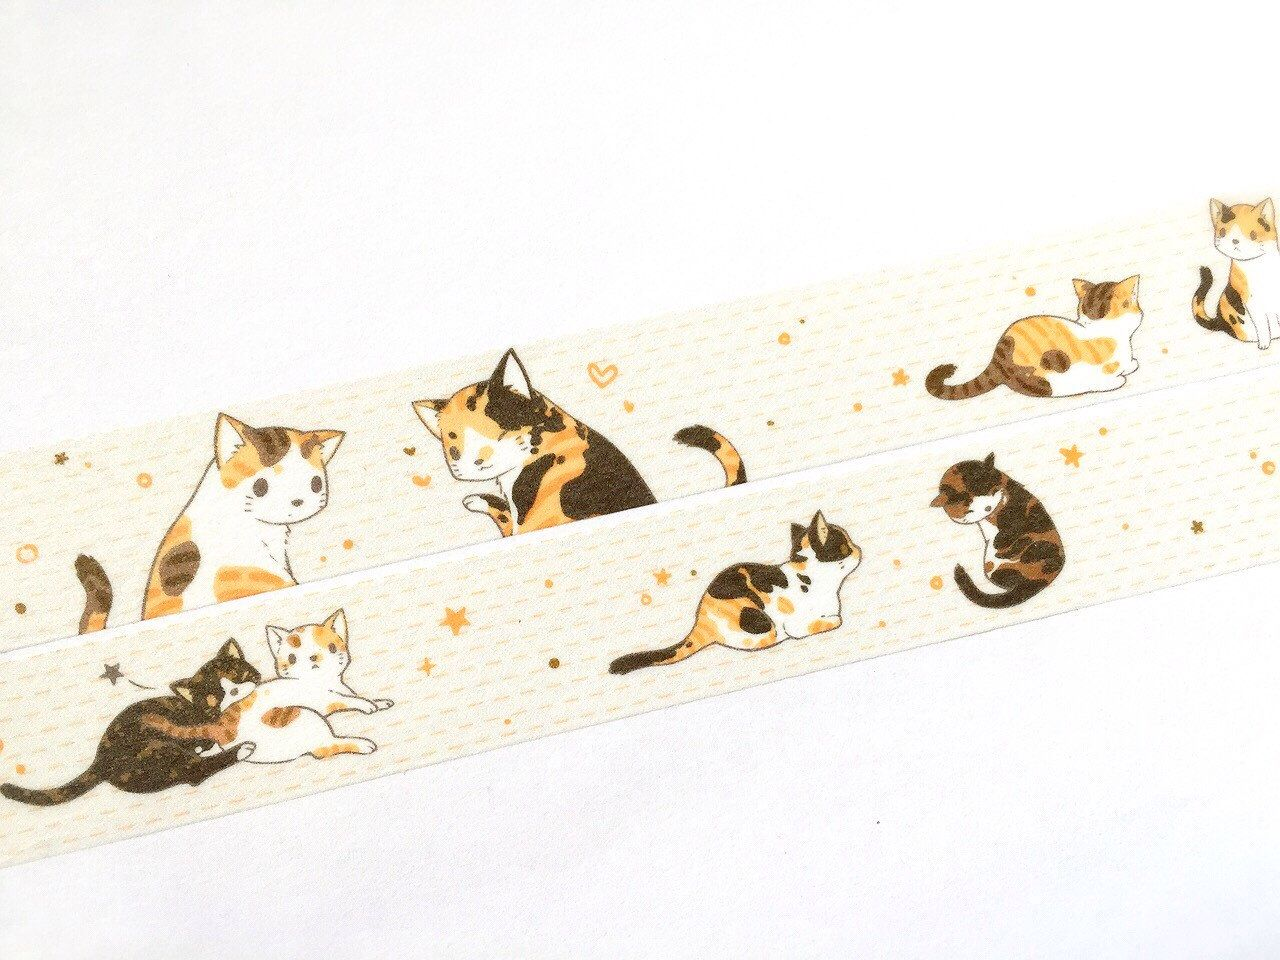 Cats!! Be together washi tape by Meowashitape on Etsy https://www.etsy.com/listing/231896870/cats-be-together-washi-tape